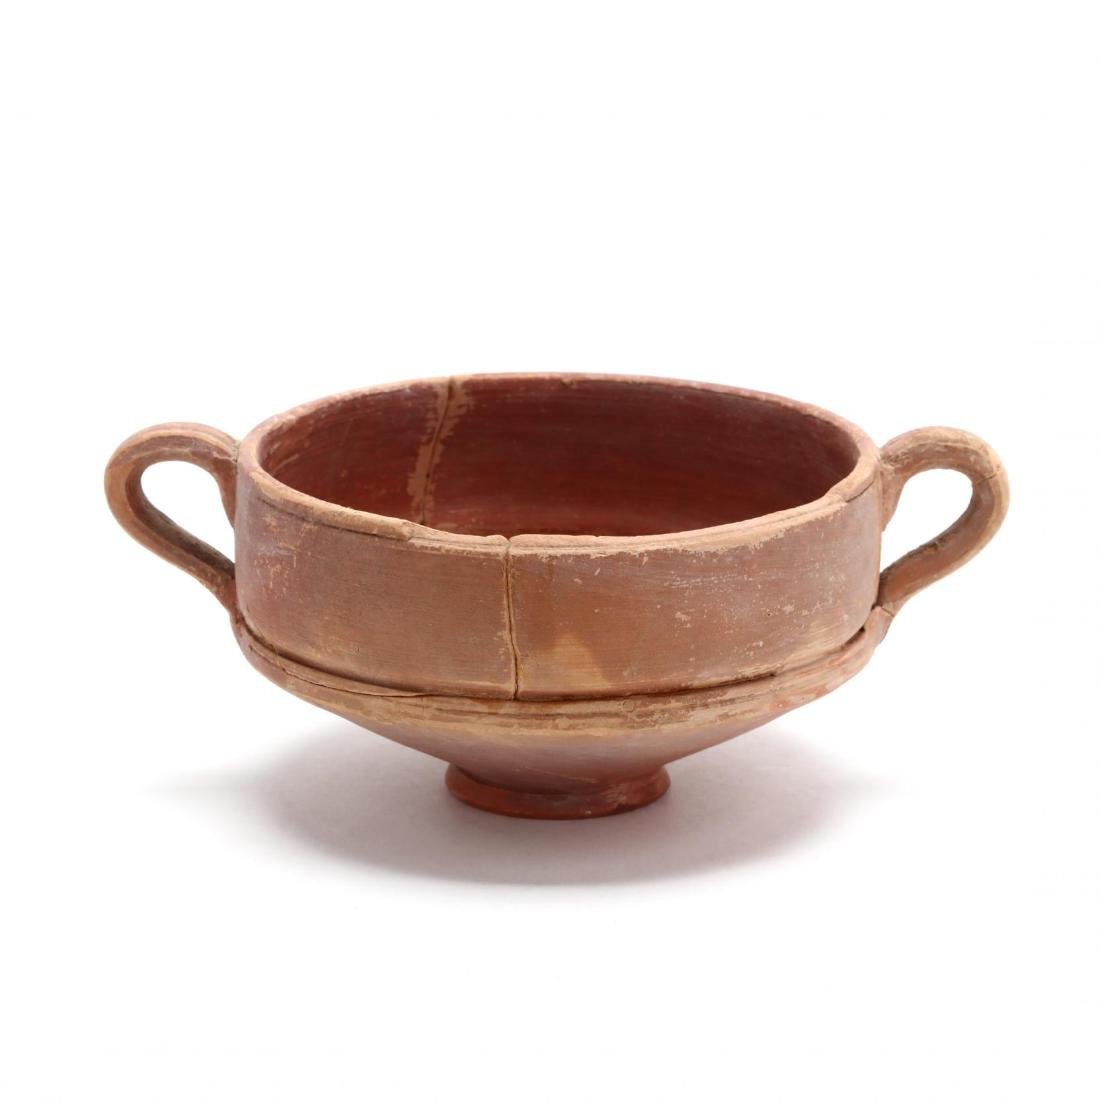 Cypriot Hellenistic Footed Red Ware Bowl